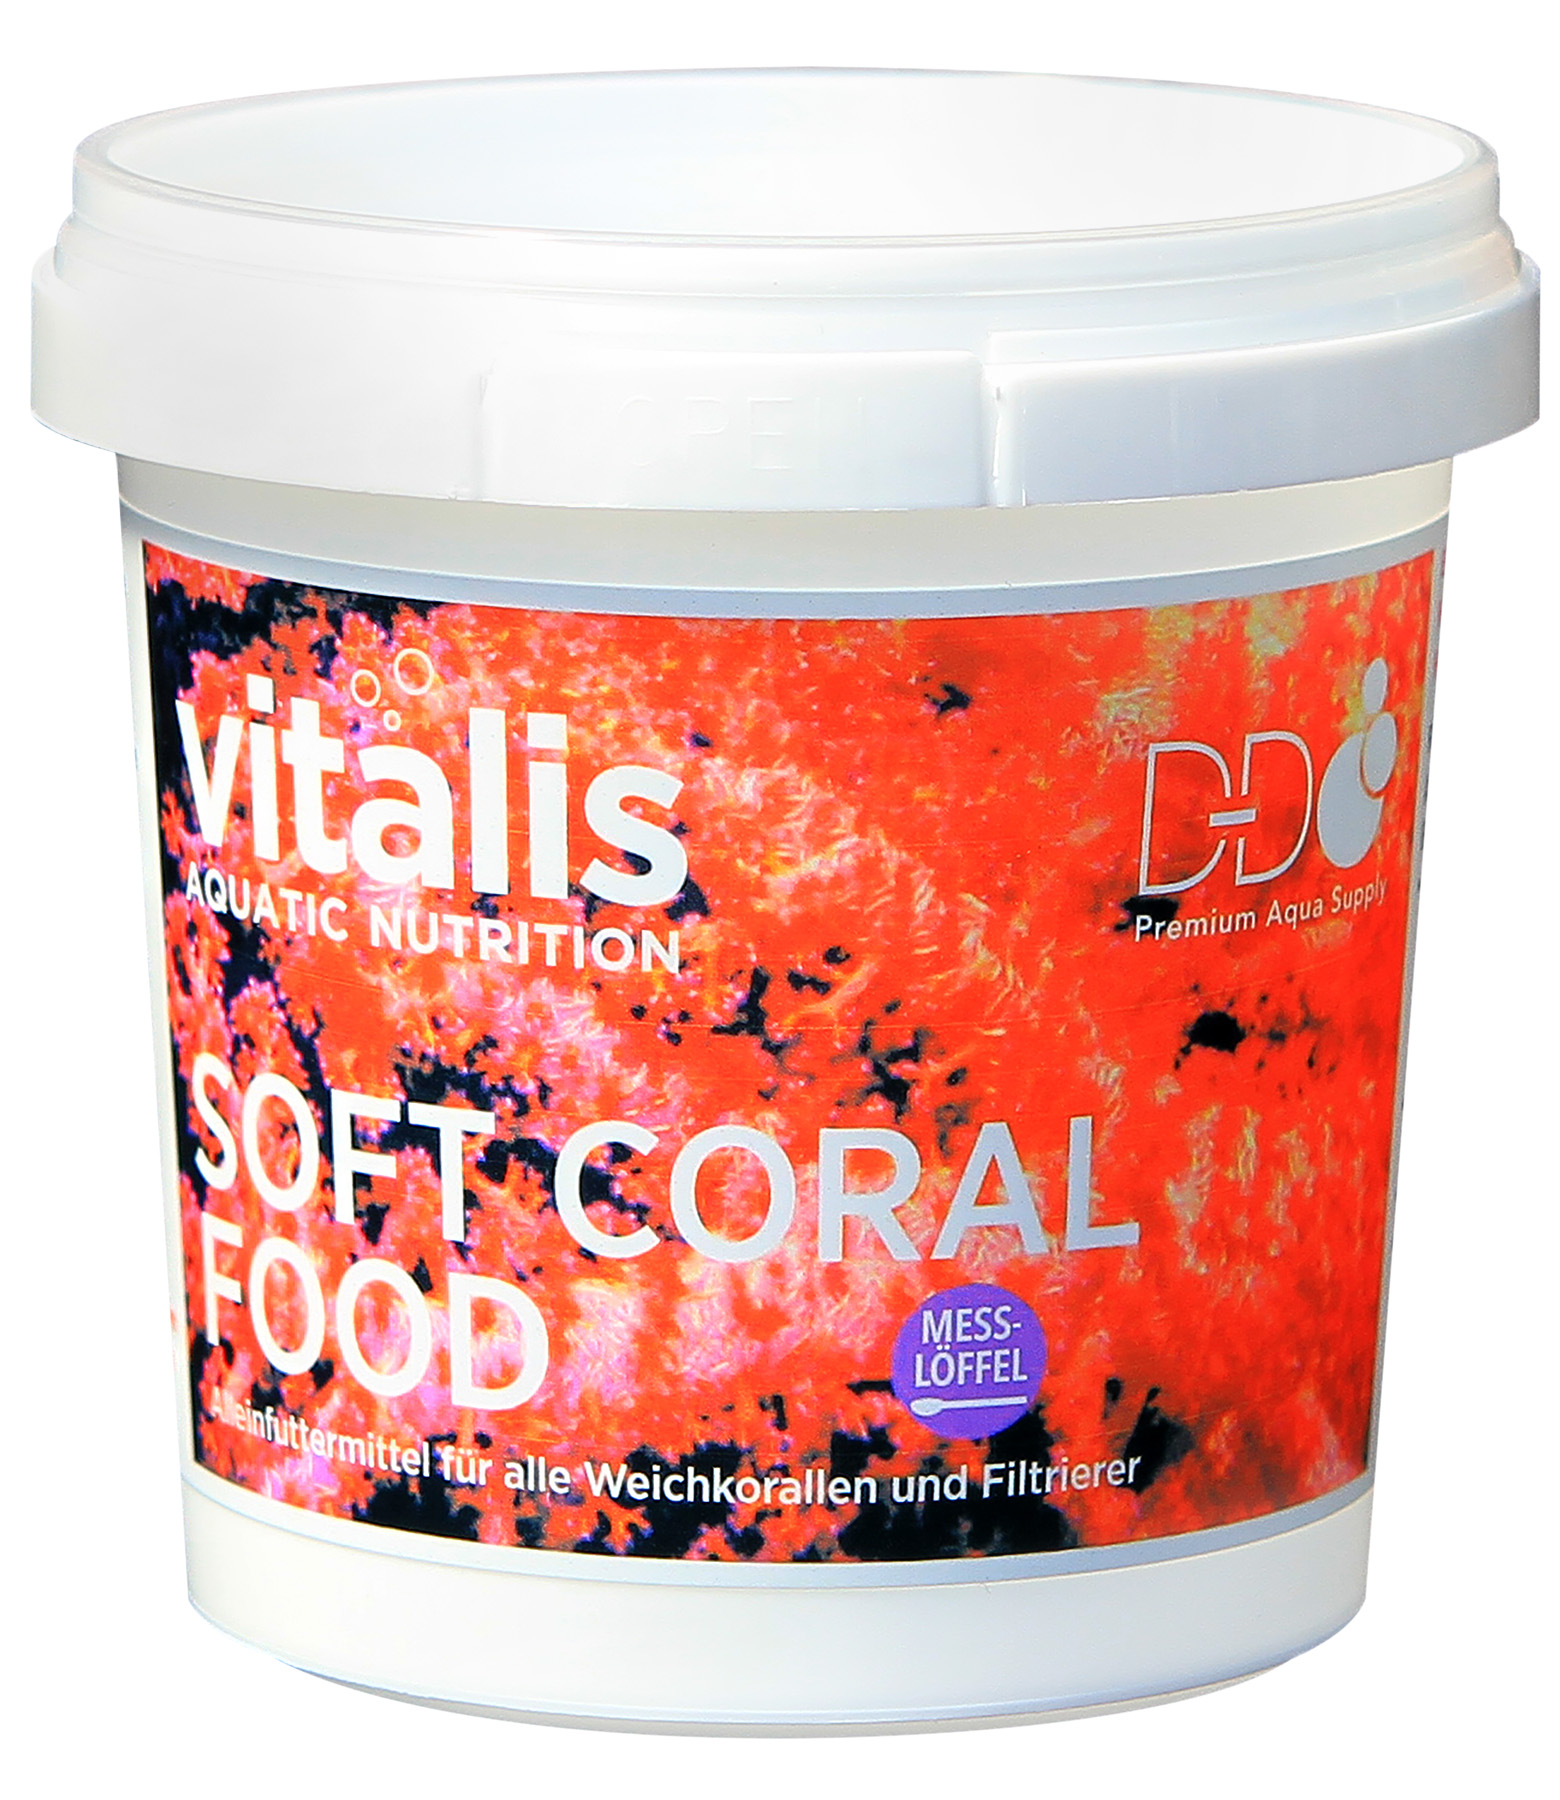 Vitalis Coral Food - Soft Coral Mikro-Flocken 50g